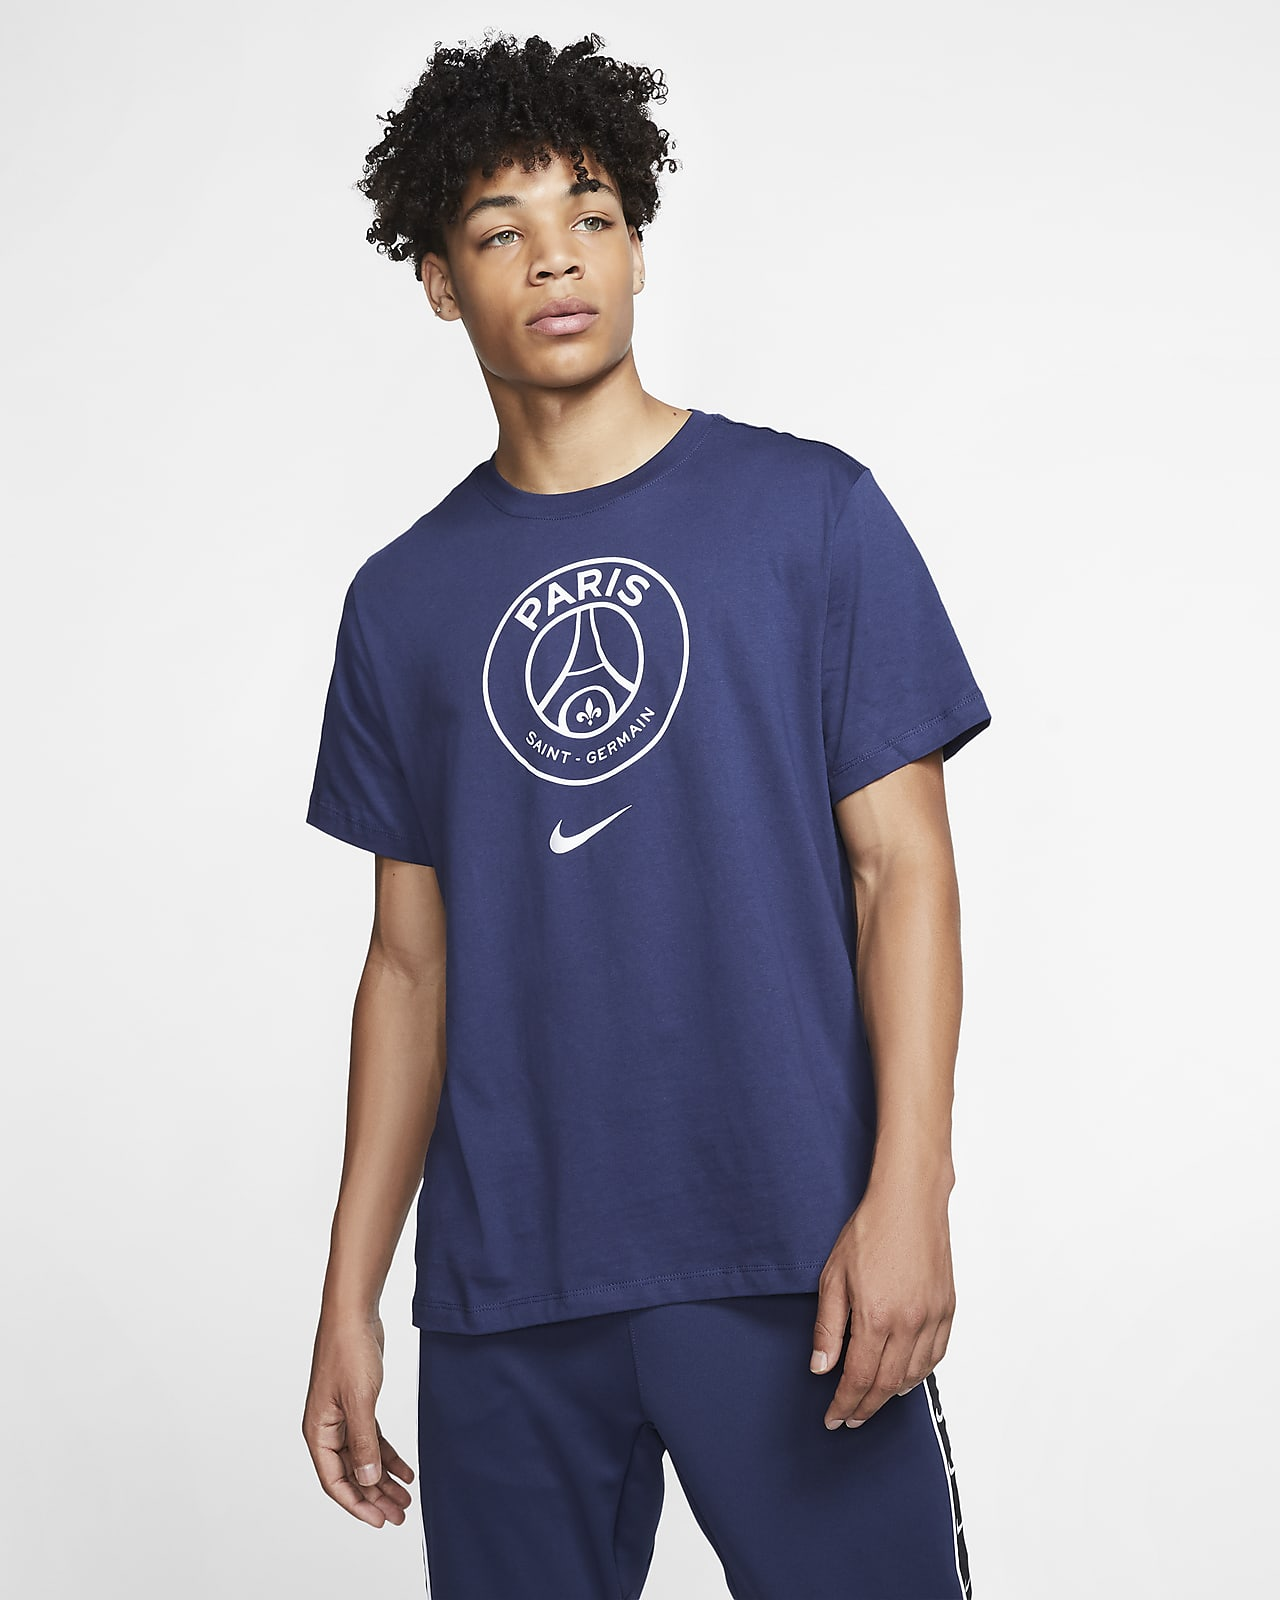 Paris Saint Germain Herren T Shirt. Nike DE